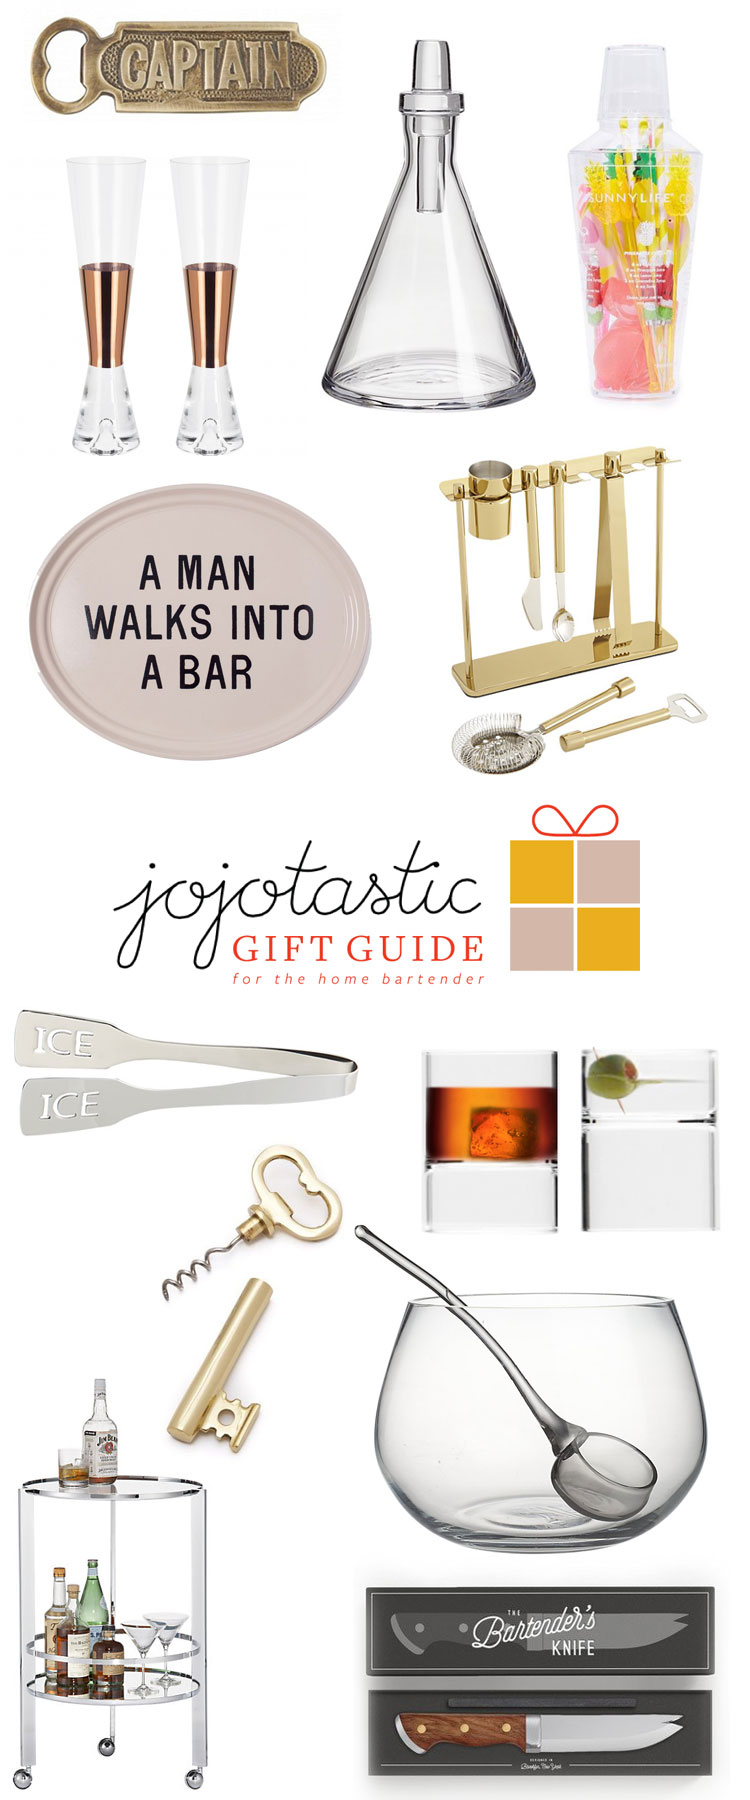 Ultimate Gift Guide: for the home bartender and hostess! Over 30 unique gift ideas and stocking stuffers — get the full guide on Jojotastic.com